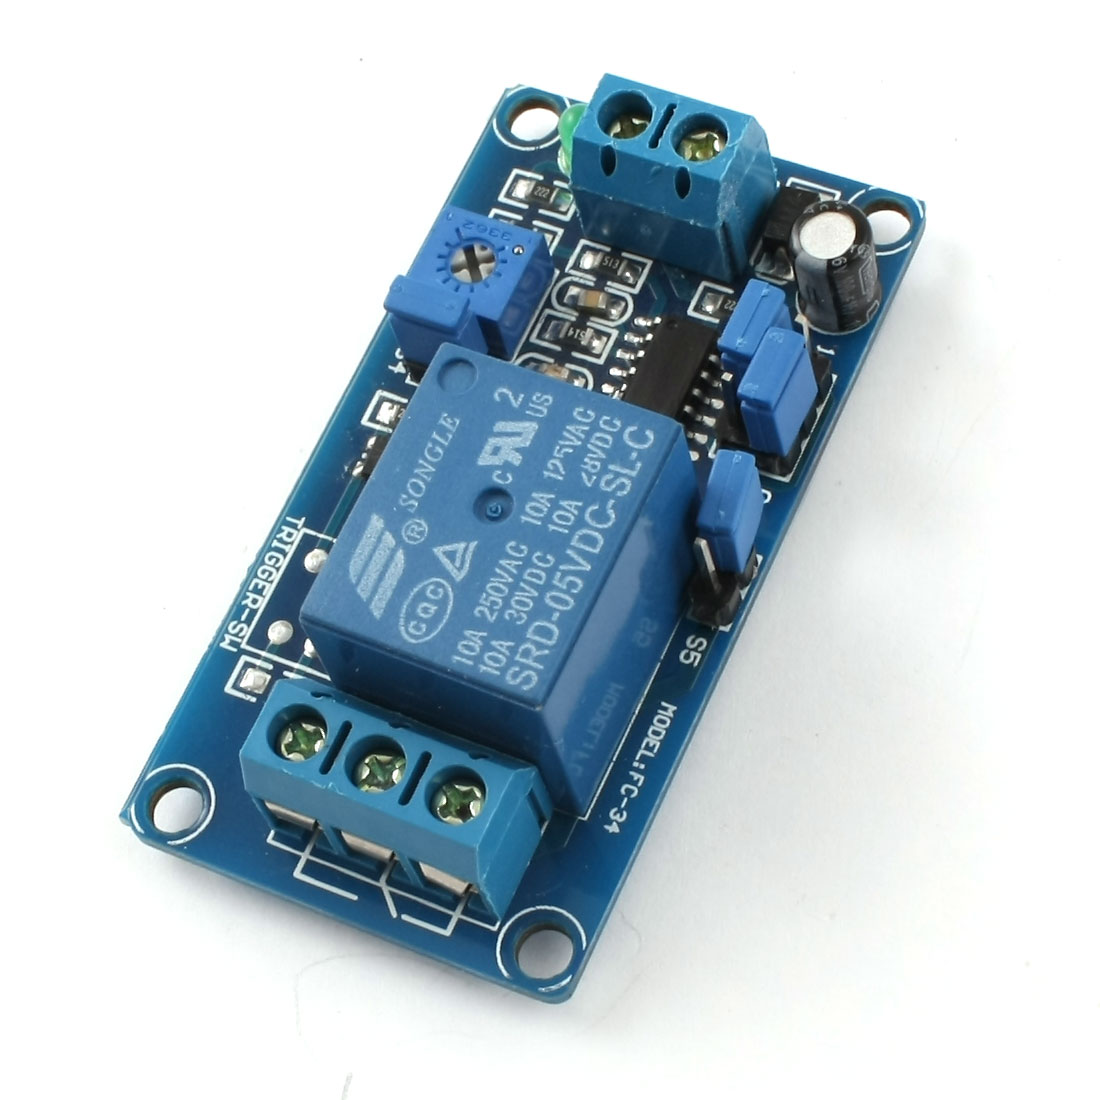 DC 5V 1 Channel Normally Closed Activating Time Delay Relay Module for ARM PIC AVR RSUS